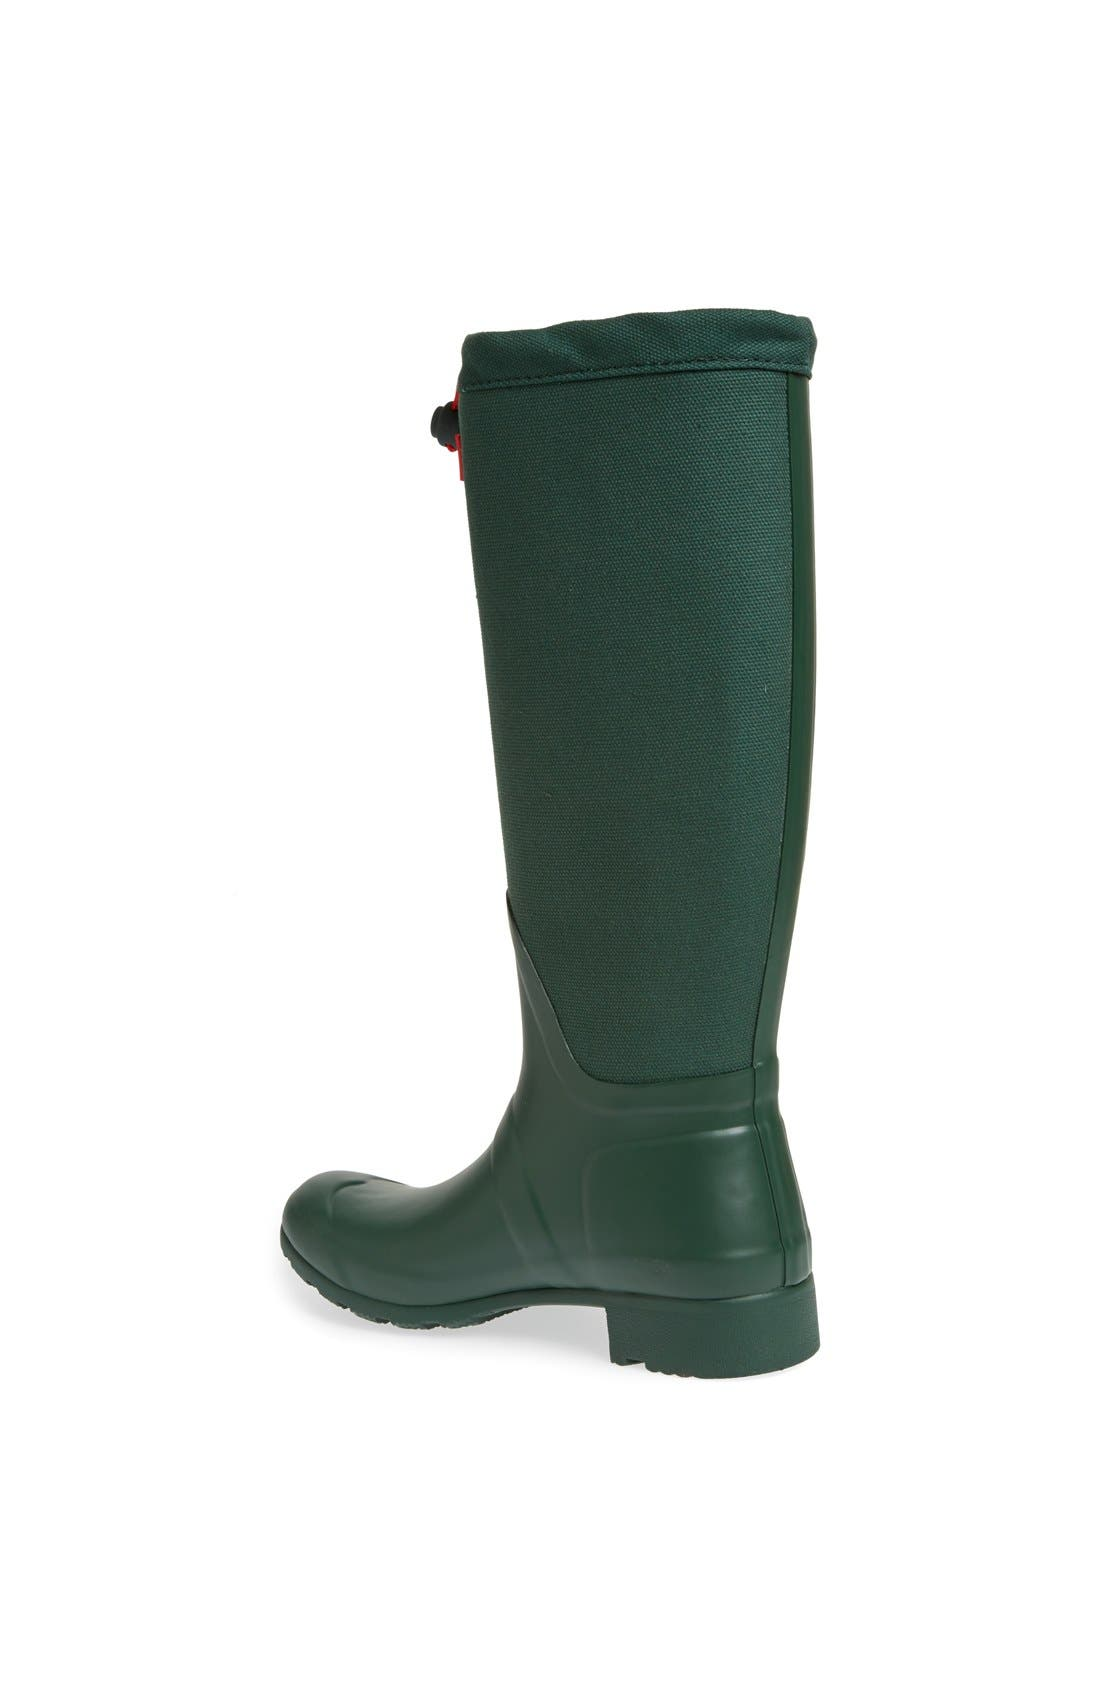 Alternate Image 2  - Hunter 'Tour' Packable Canvas Rain Boot (Women)